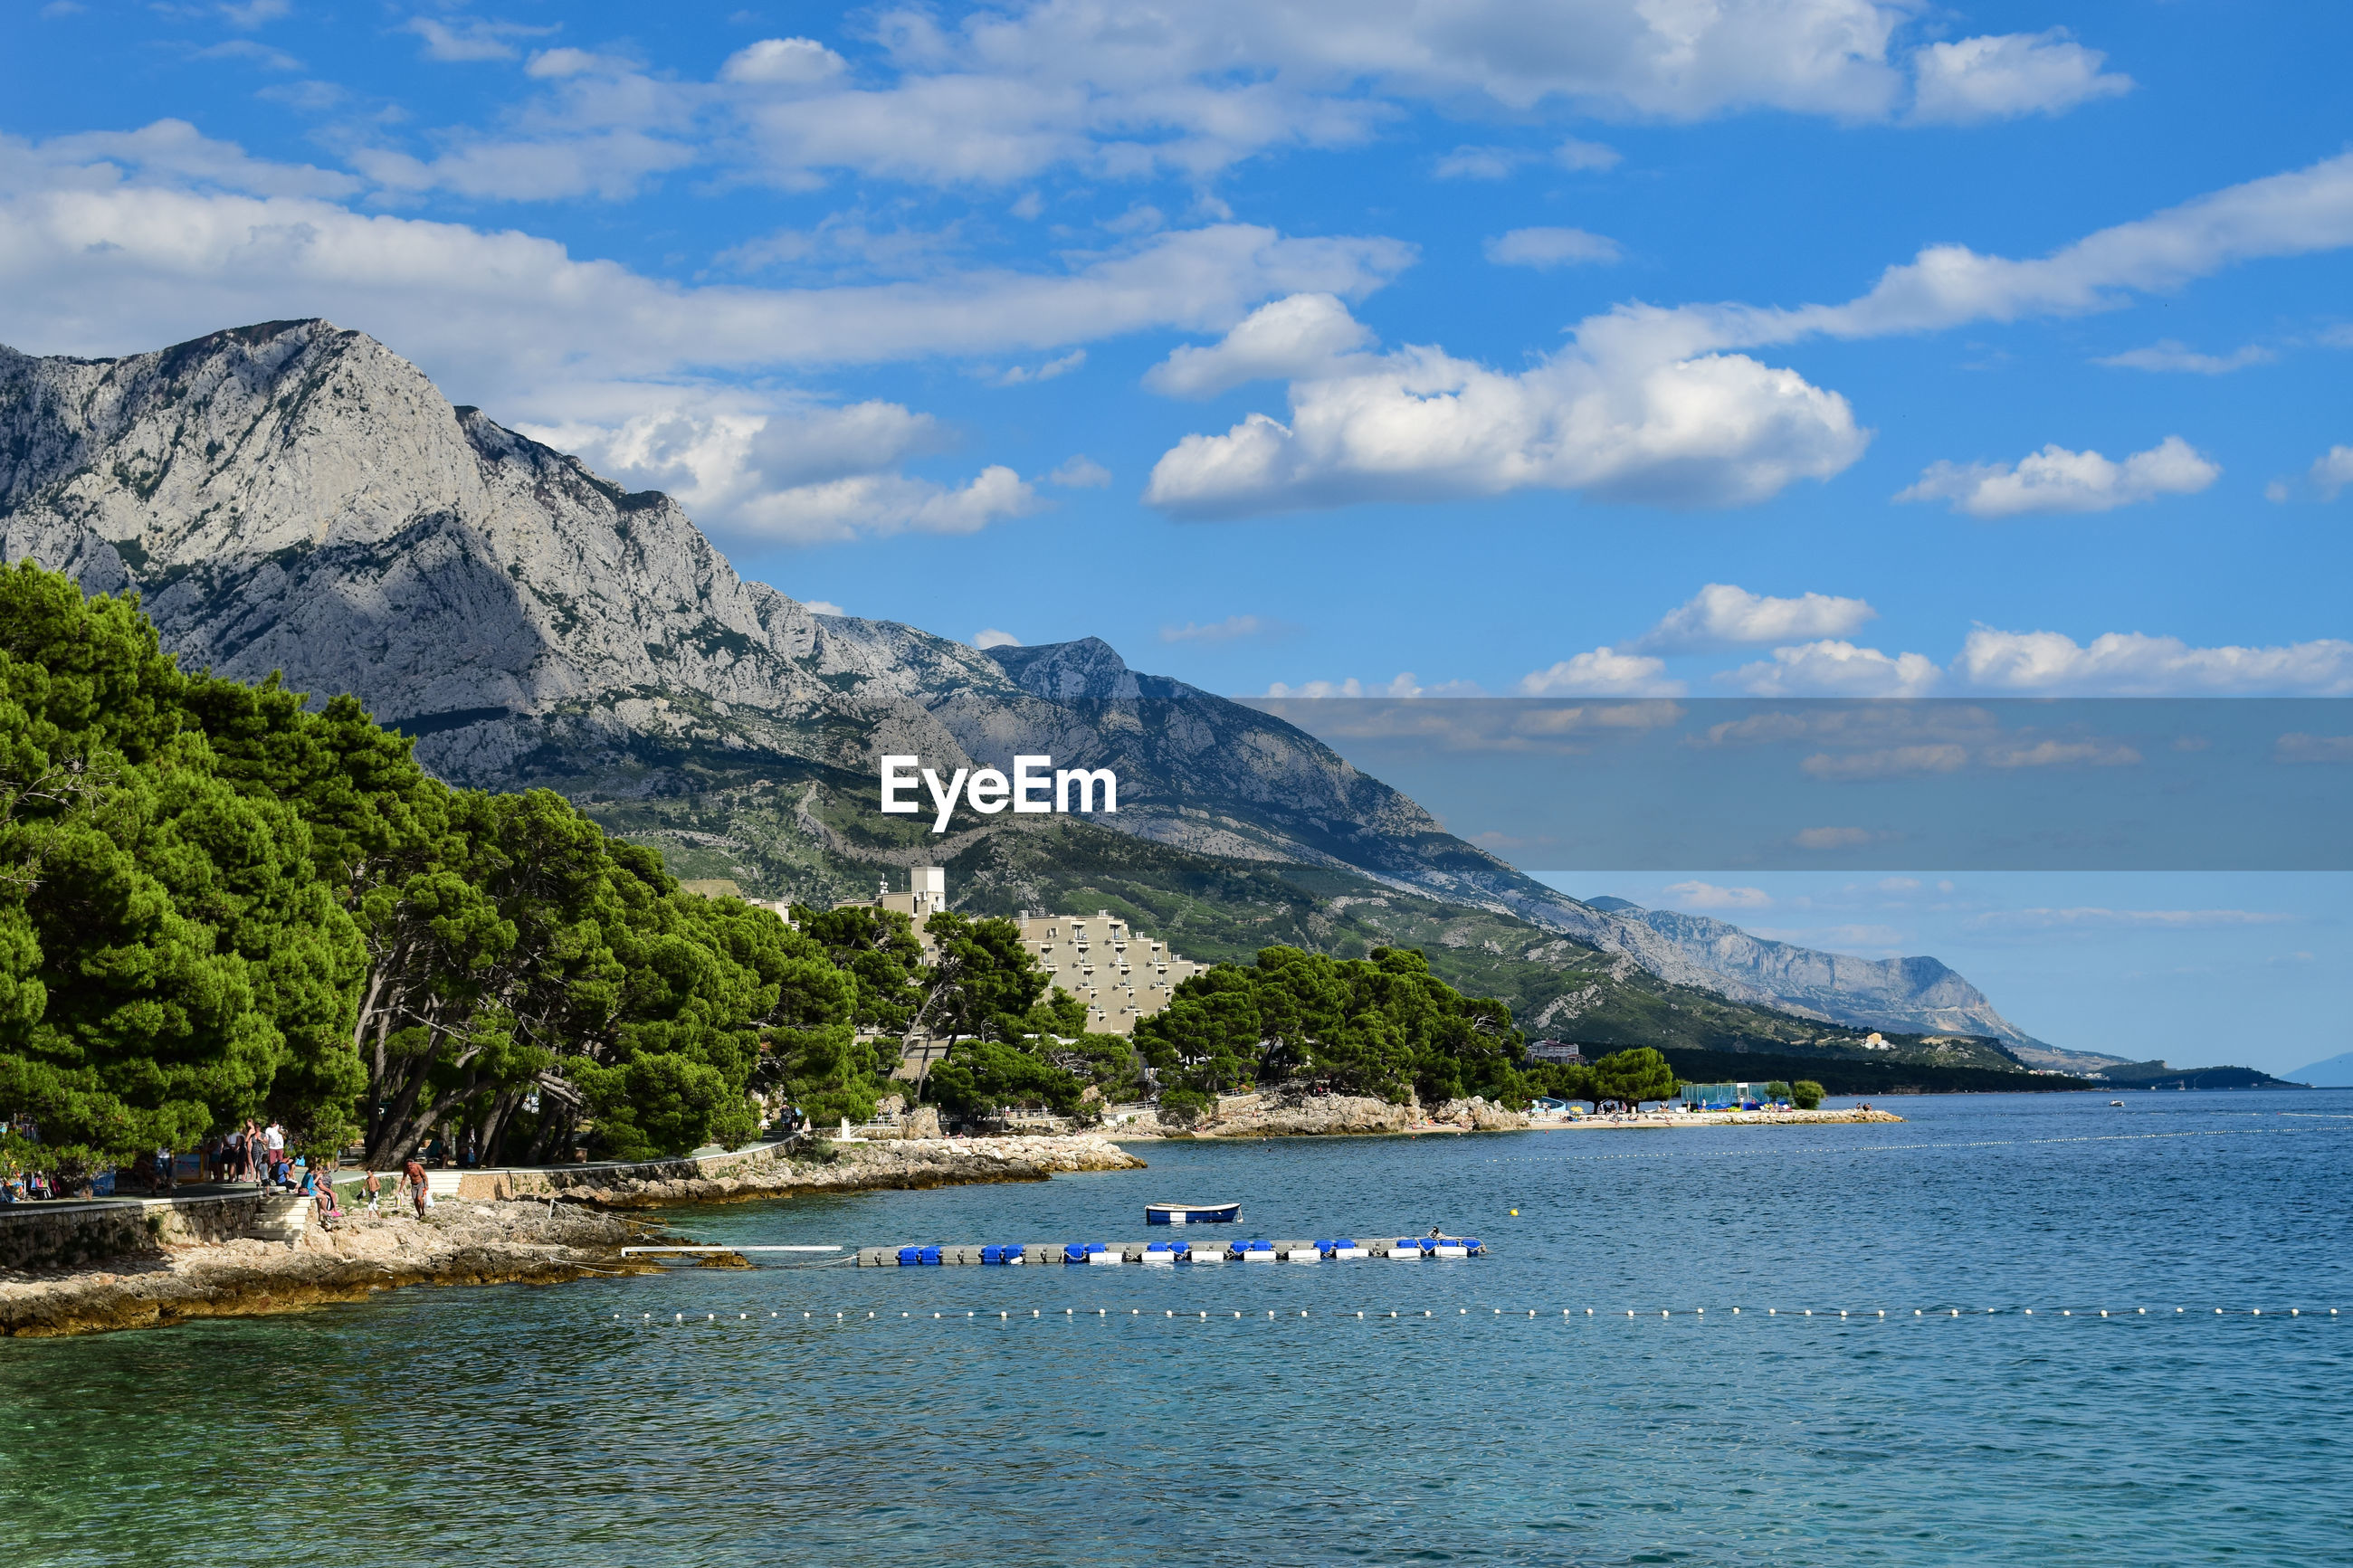 SCENIC VIEW OF MOUNTAINS BY SEA AGAINST SKY